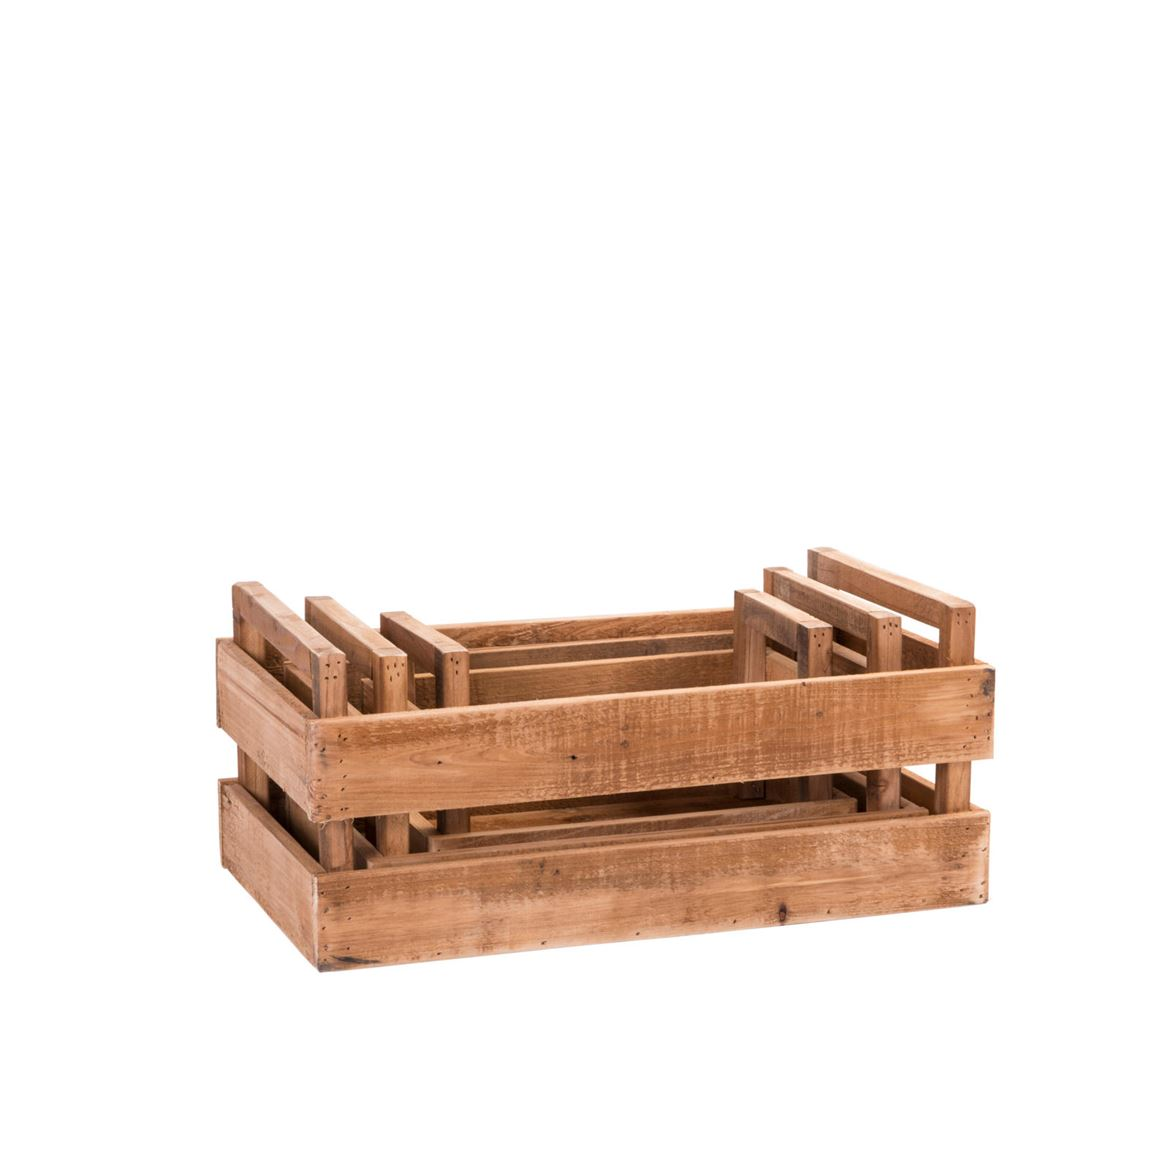 RECYCLE Kratje naturel H 11 x B 29 x D 17 cm_recycle-kratje-naturel-h-11-x-b-29-x-d-17-cm